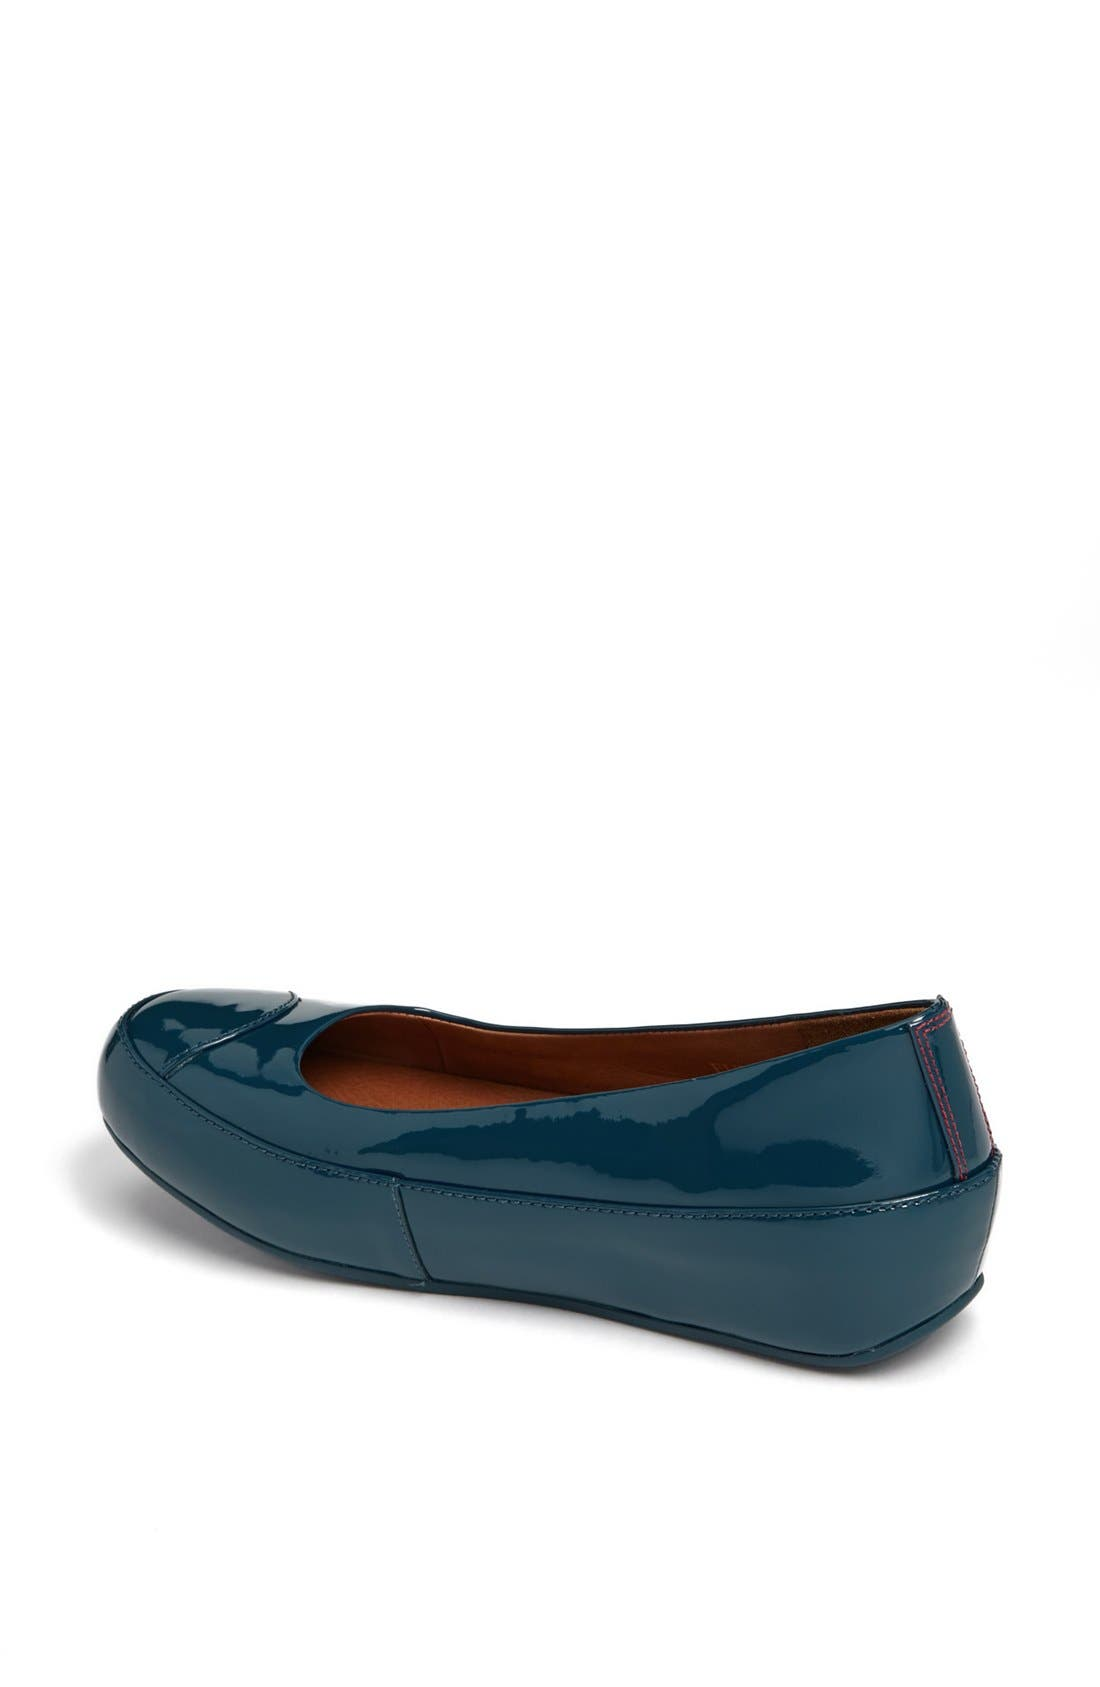 Alternate Image 2  - FitFlop 'Dué™' Patent Flat